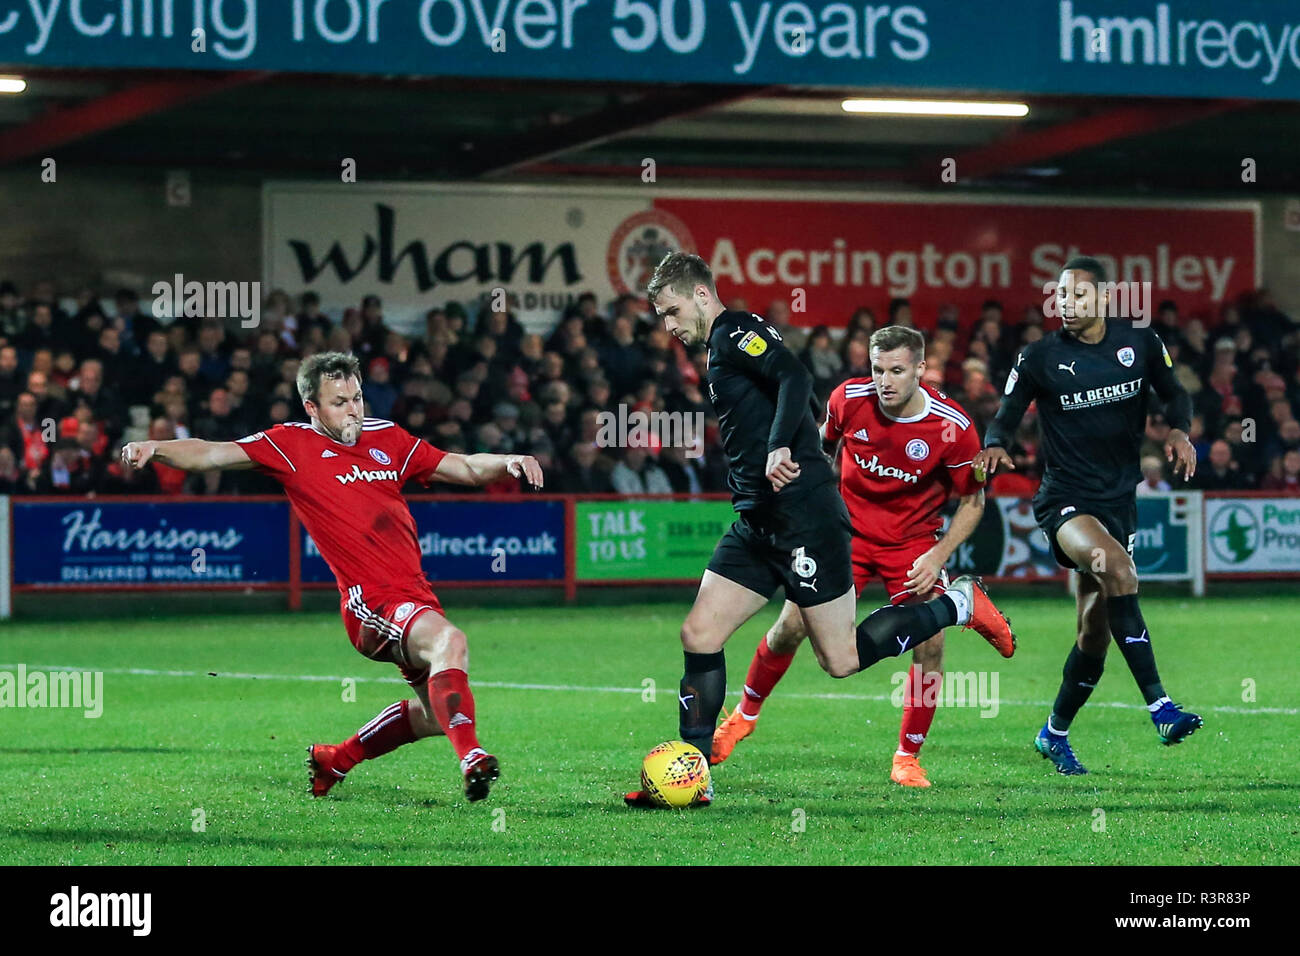 17th November 2018, Crown Ground, Accrington, England; Sky Bet League One, Accrington Stanley v Barnsley ; Liam Lindsay (06) of Barnsley plus the ball in the box as Mark Hughes (03) of Accrington Stanley challenges   Credit: Mark Cosgrove/News Images  English Football League images are subject to DataCo Licence - Stock Image